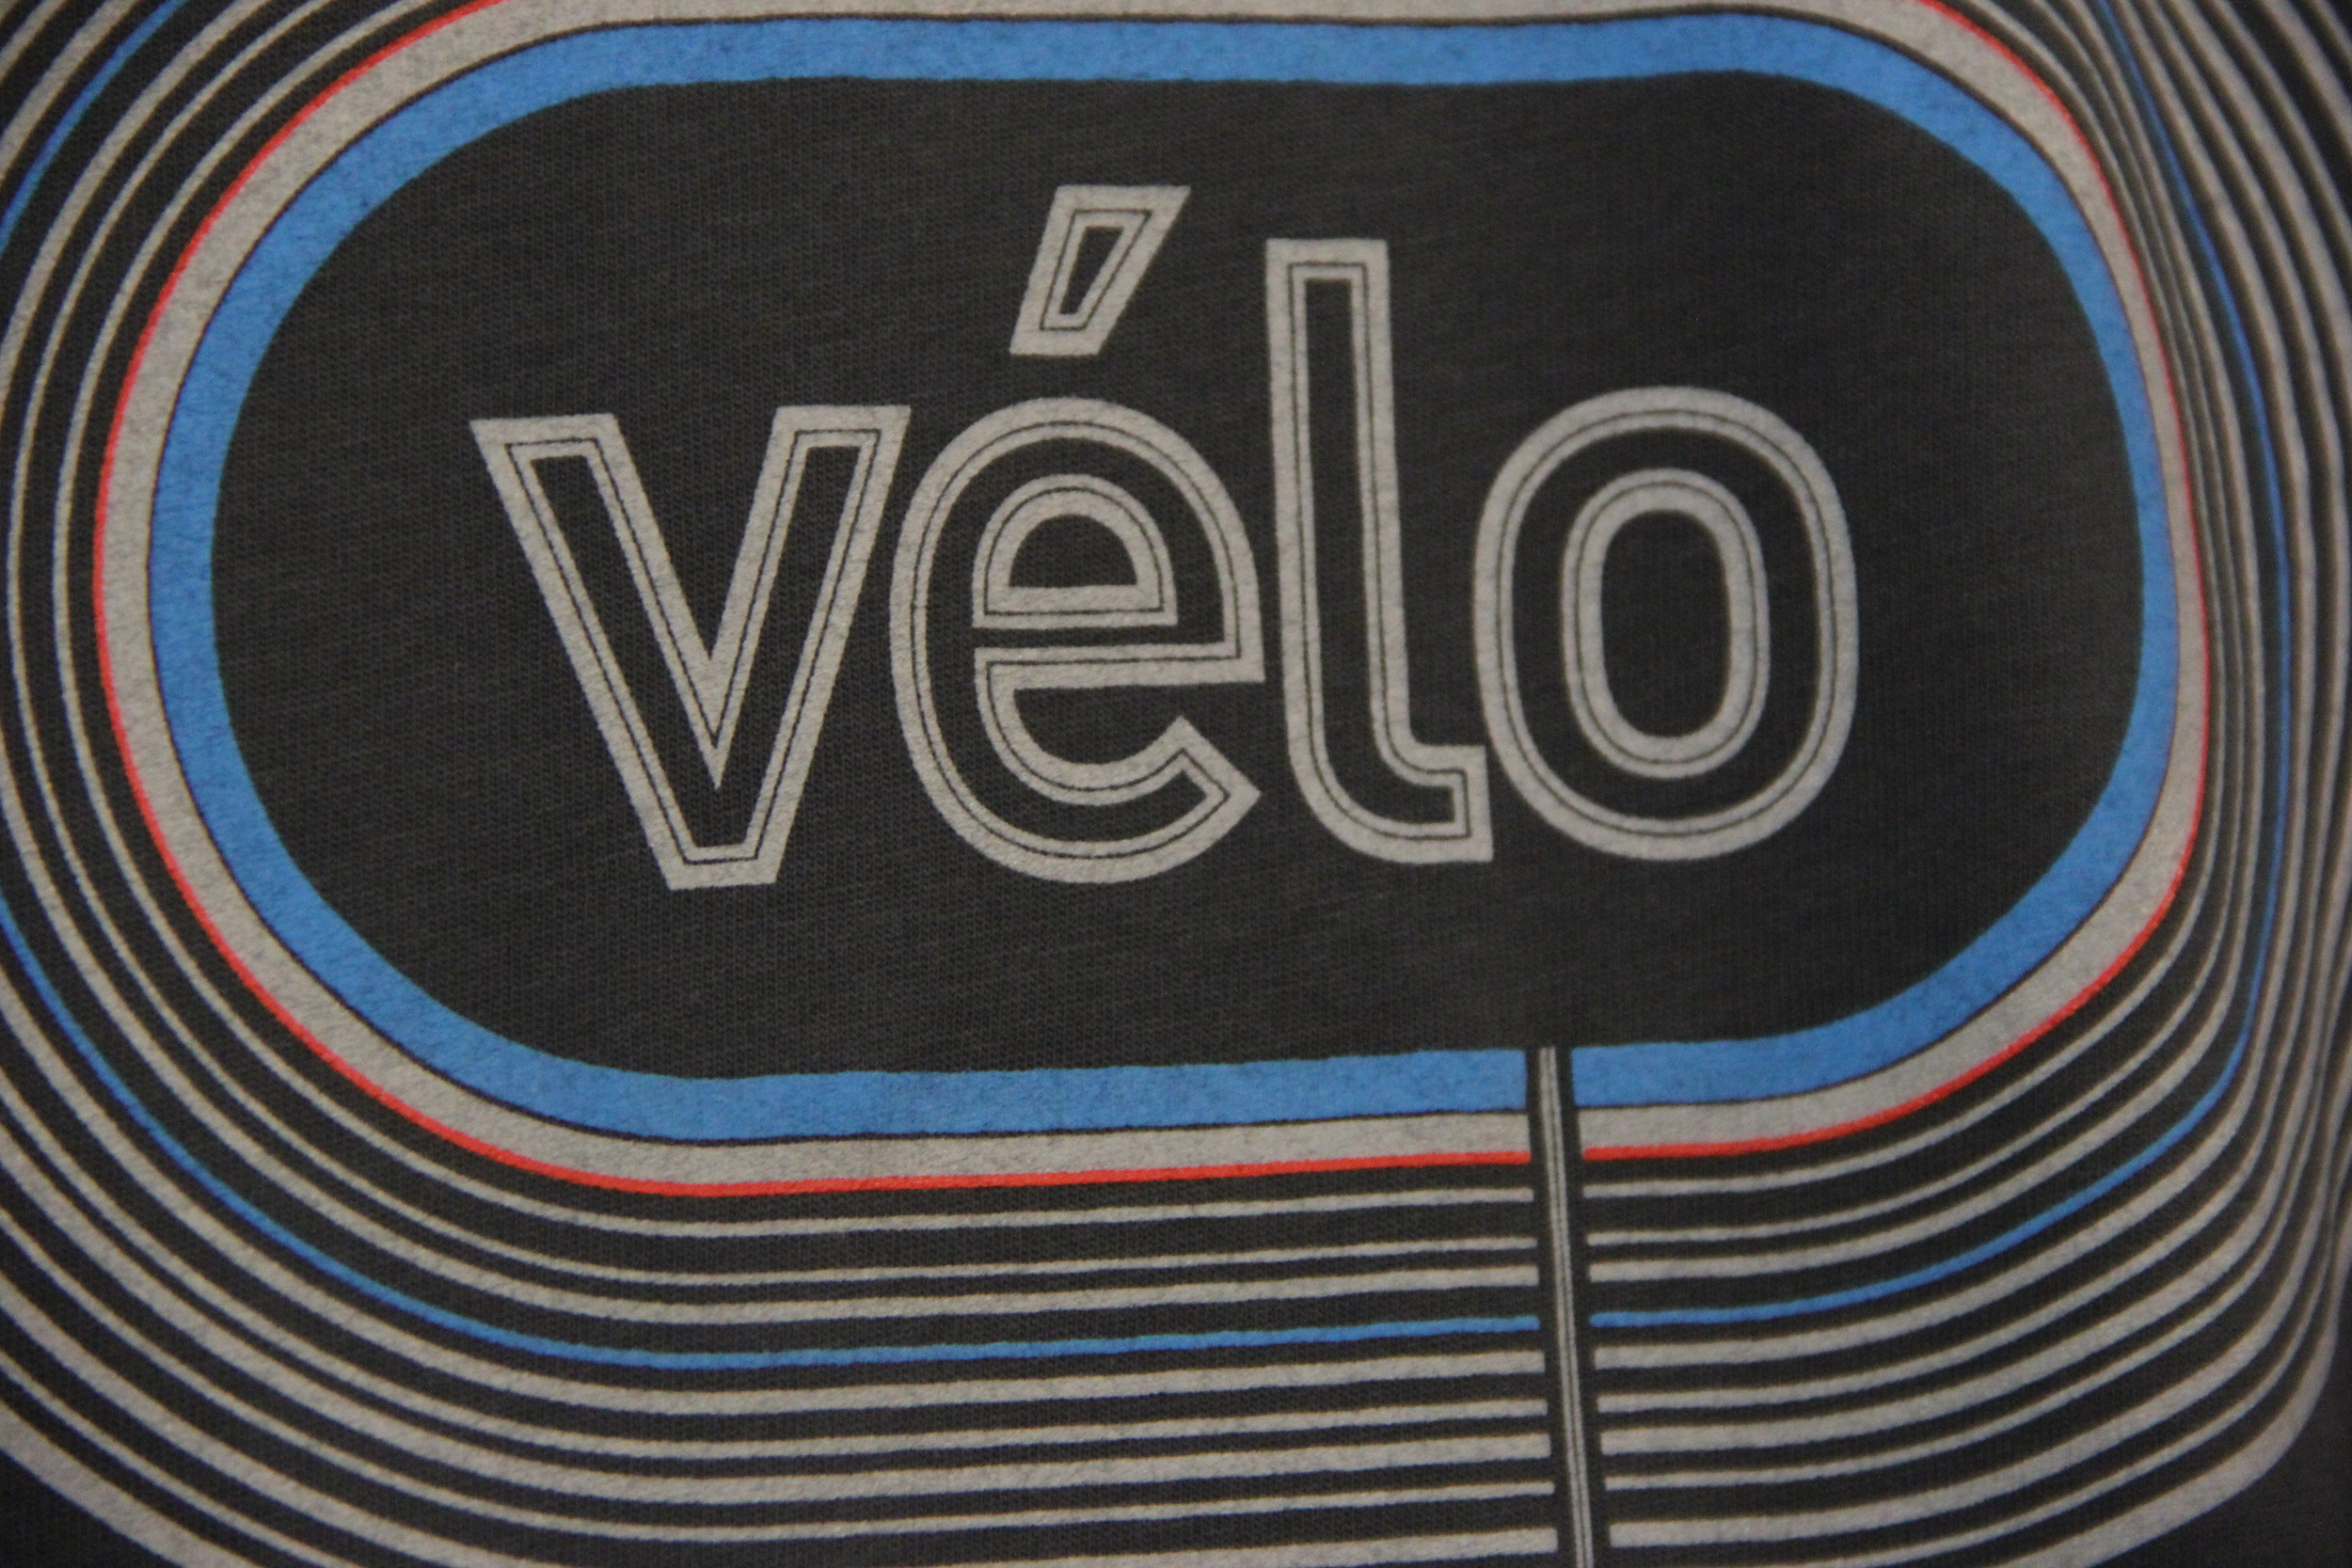 Le vélo T-shirt by  Occasional Human